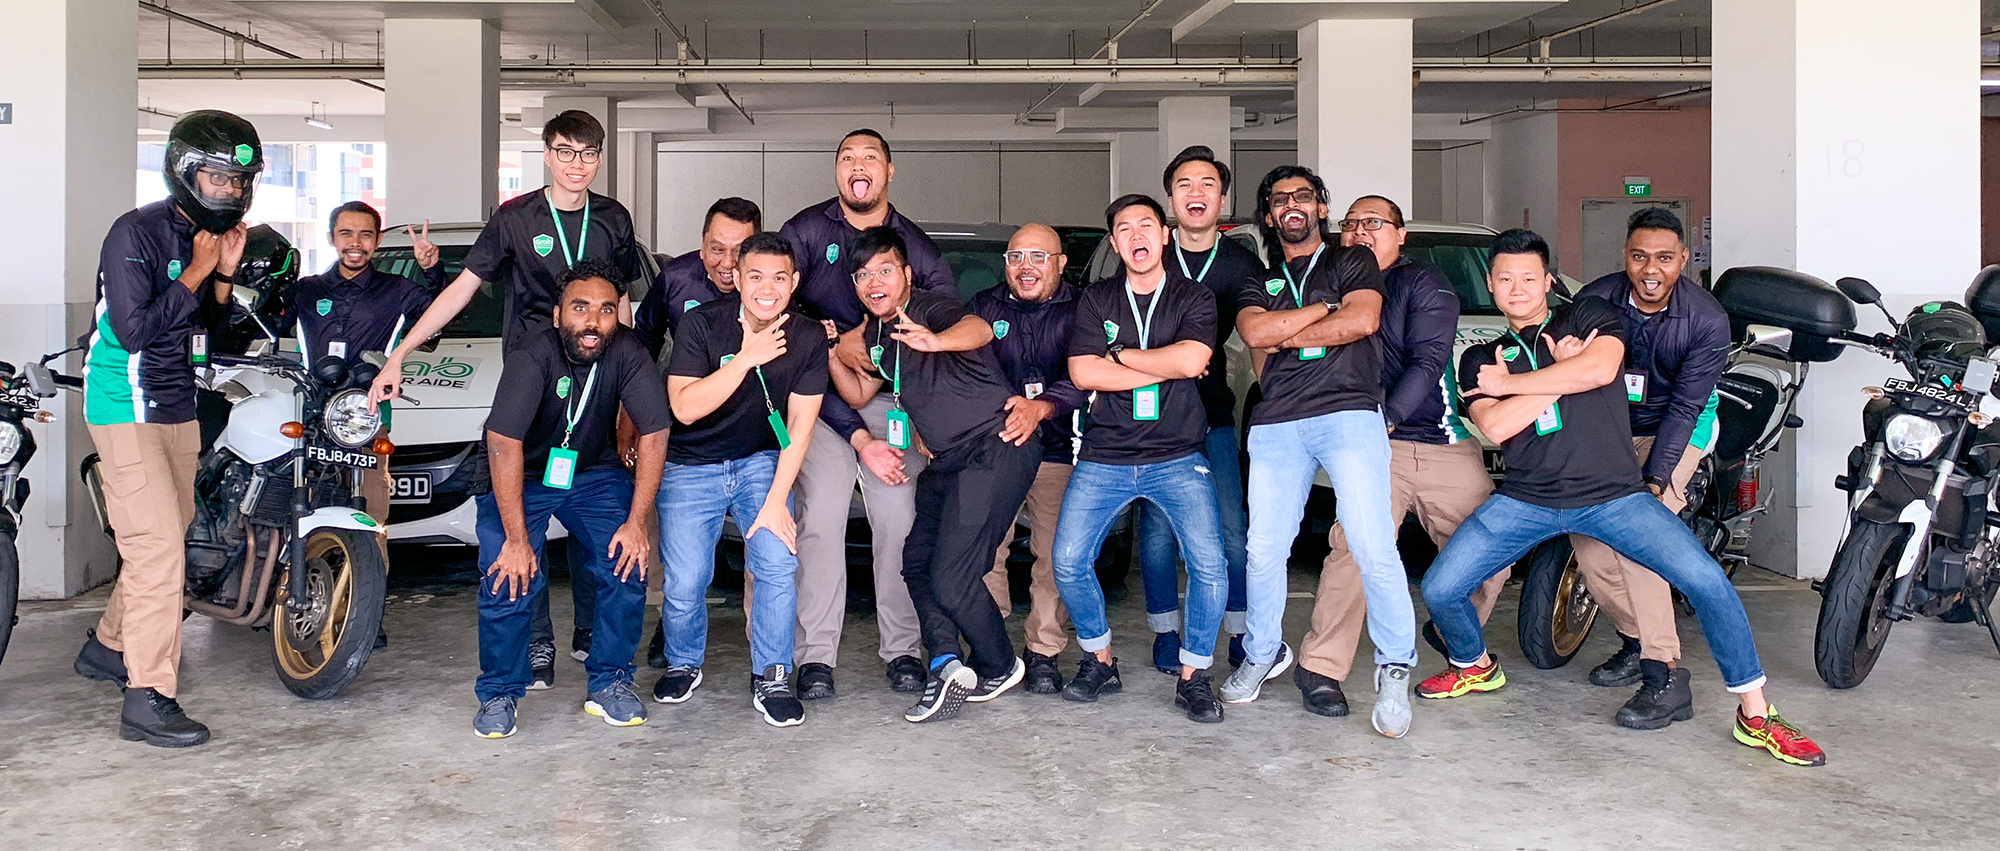 Meet the team that keeps Southeast Asia moving